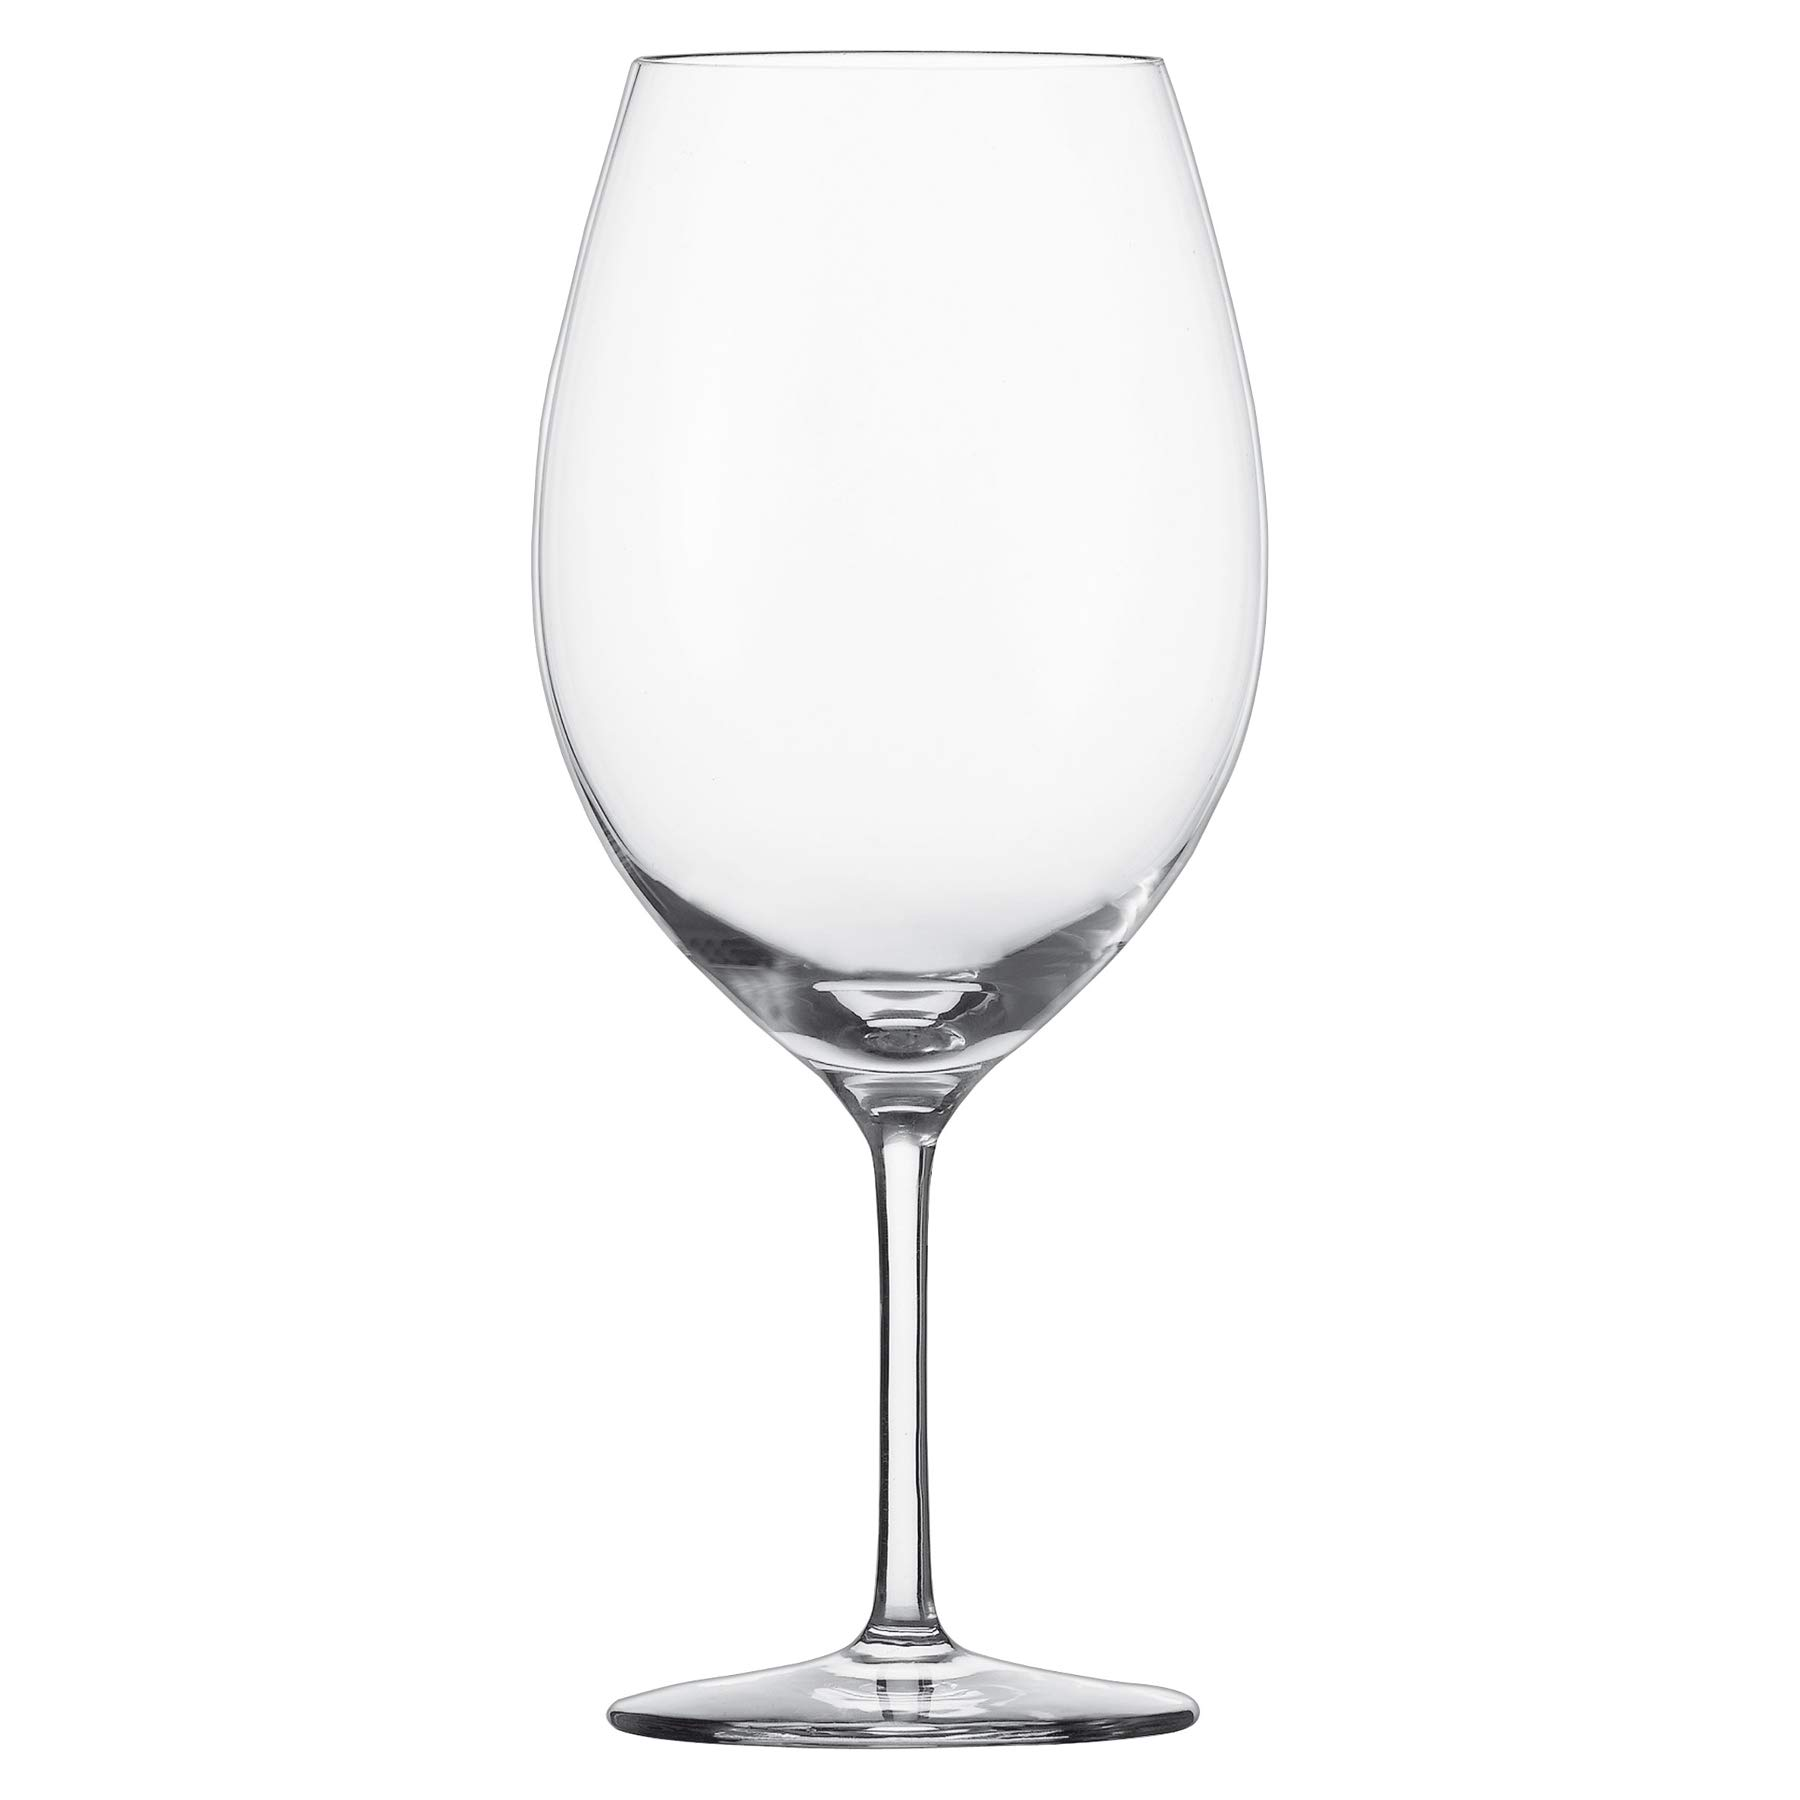 Schott Zwiesel Tritan Crystal Glass Cru Classic Stemware Collection Full Red Wine Glass, 27.9-Ounce, Buy 6, Get 8 Glasses